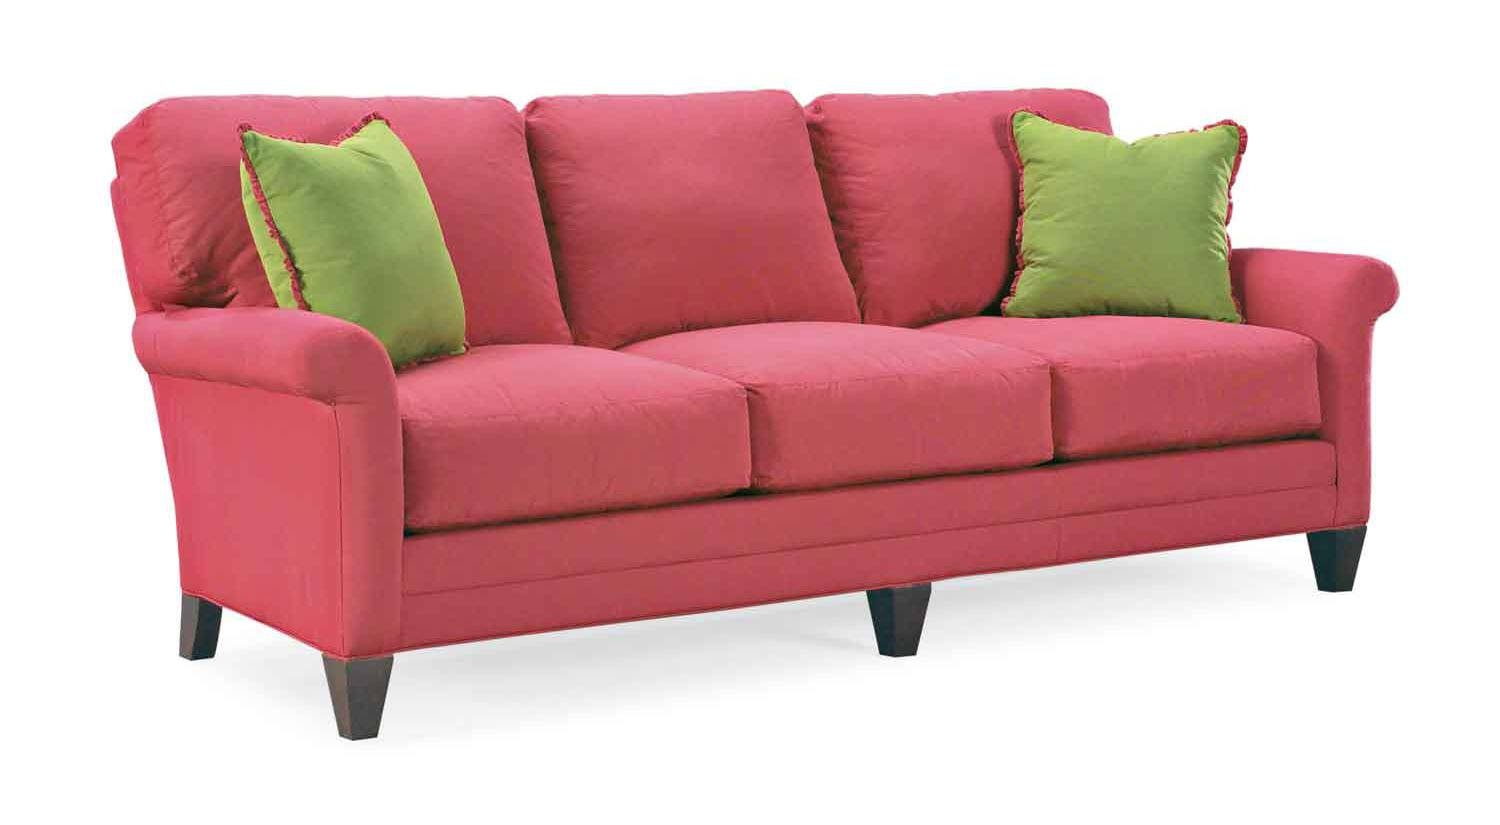 Circle Furniture - Stella Sofa | Classic Sofas Ma | Circle Furniture with regard to Circle Sofas (Image 6 of 25)